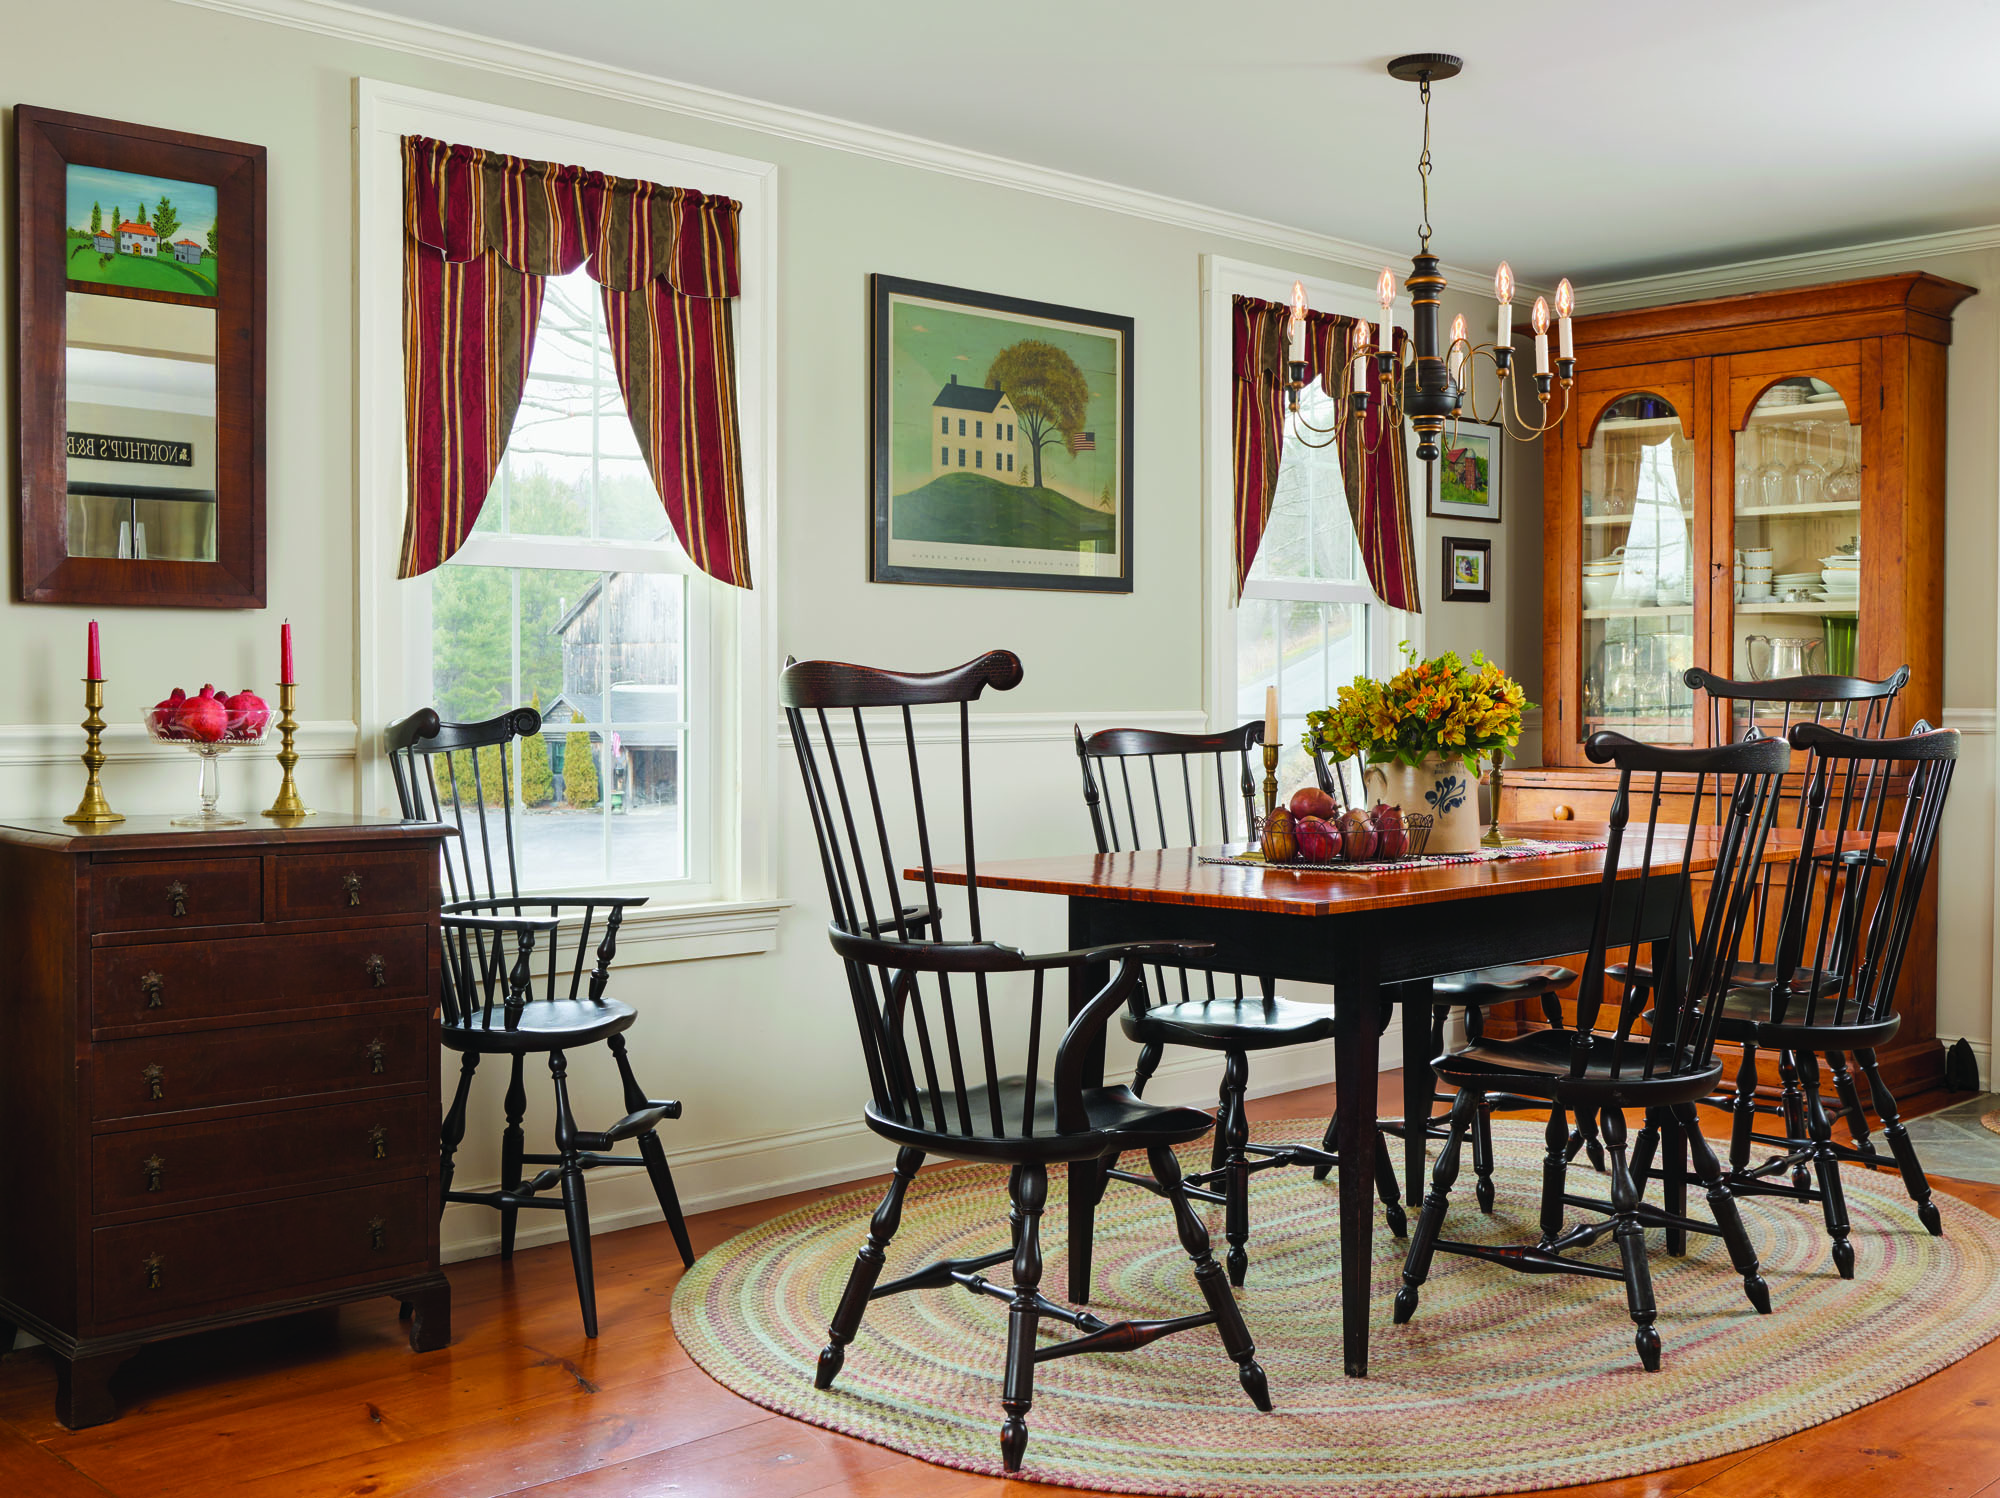 The formal dining room is adjacent to the kitchen space added in 1876. Just outside the windows is the barn where the owner's grandparents kept their dairy cows. WIth new wainscoting and window frames in period style, the barn functions as an office and showroom.